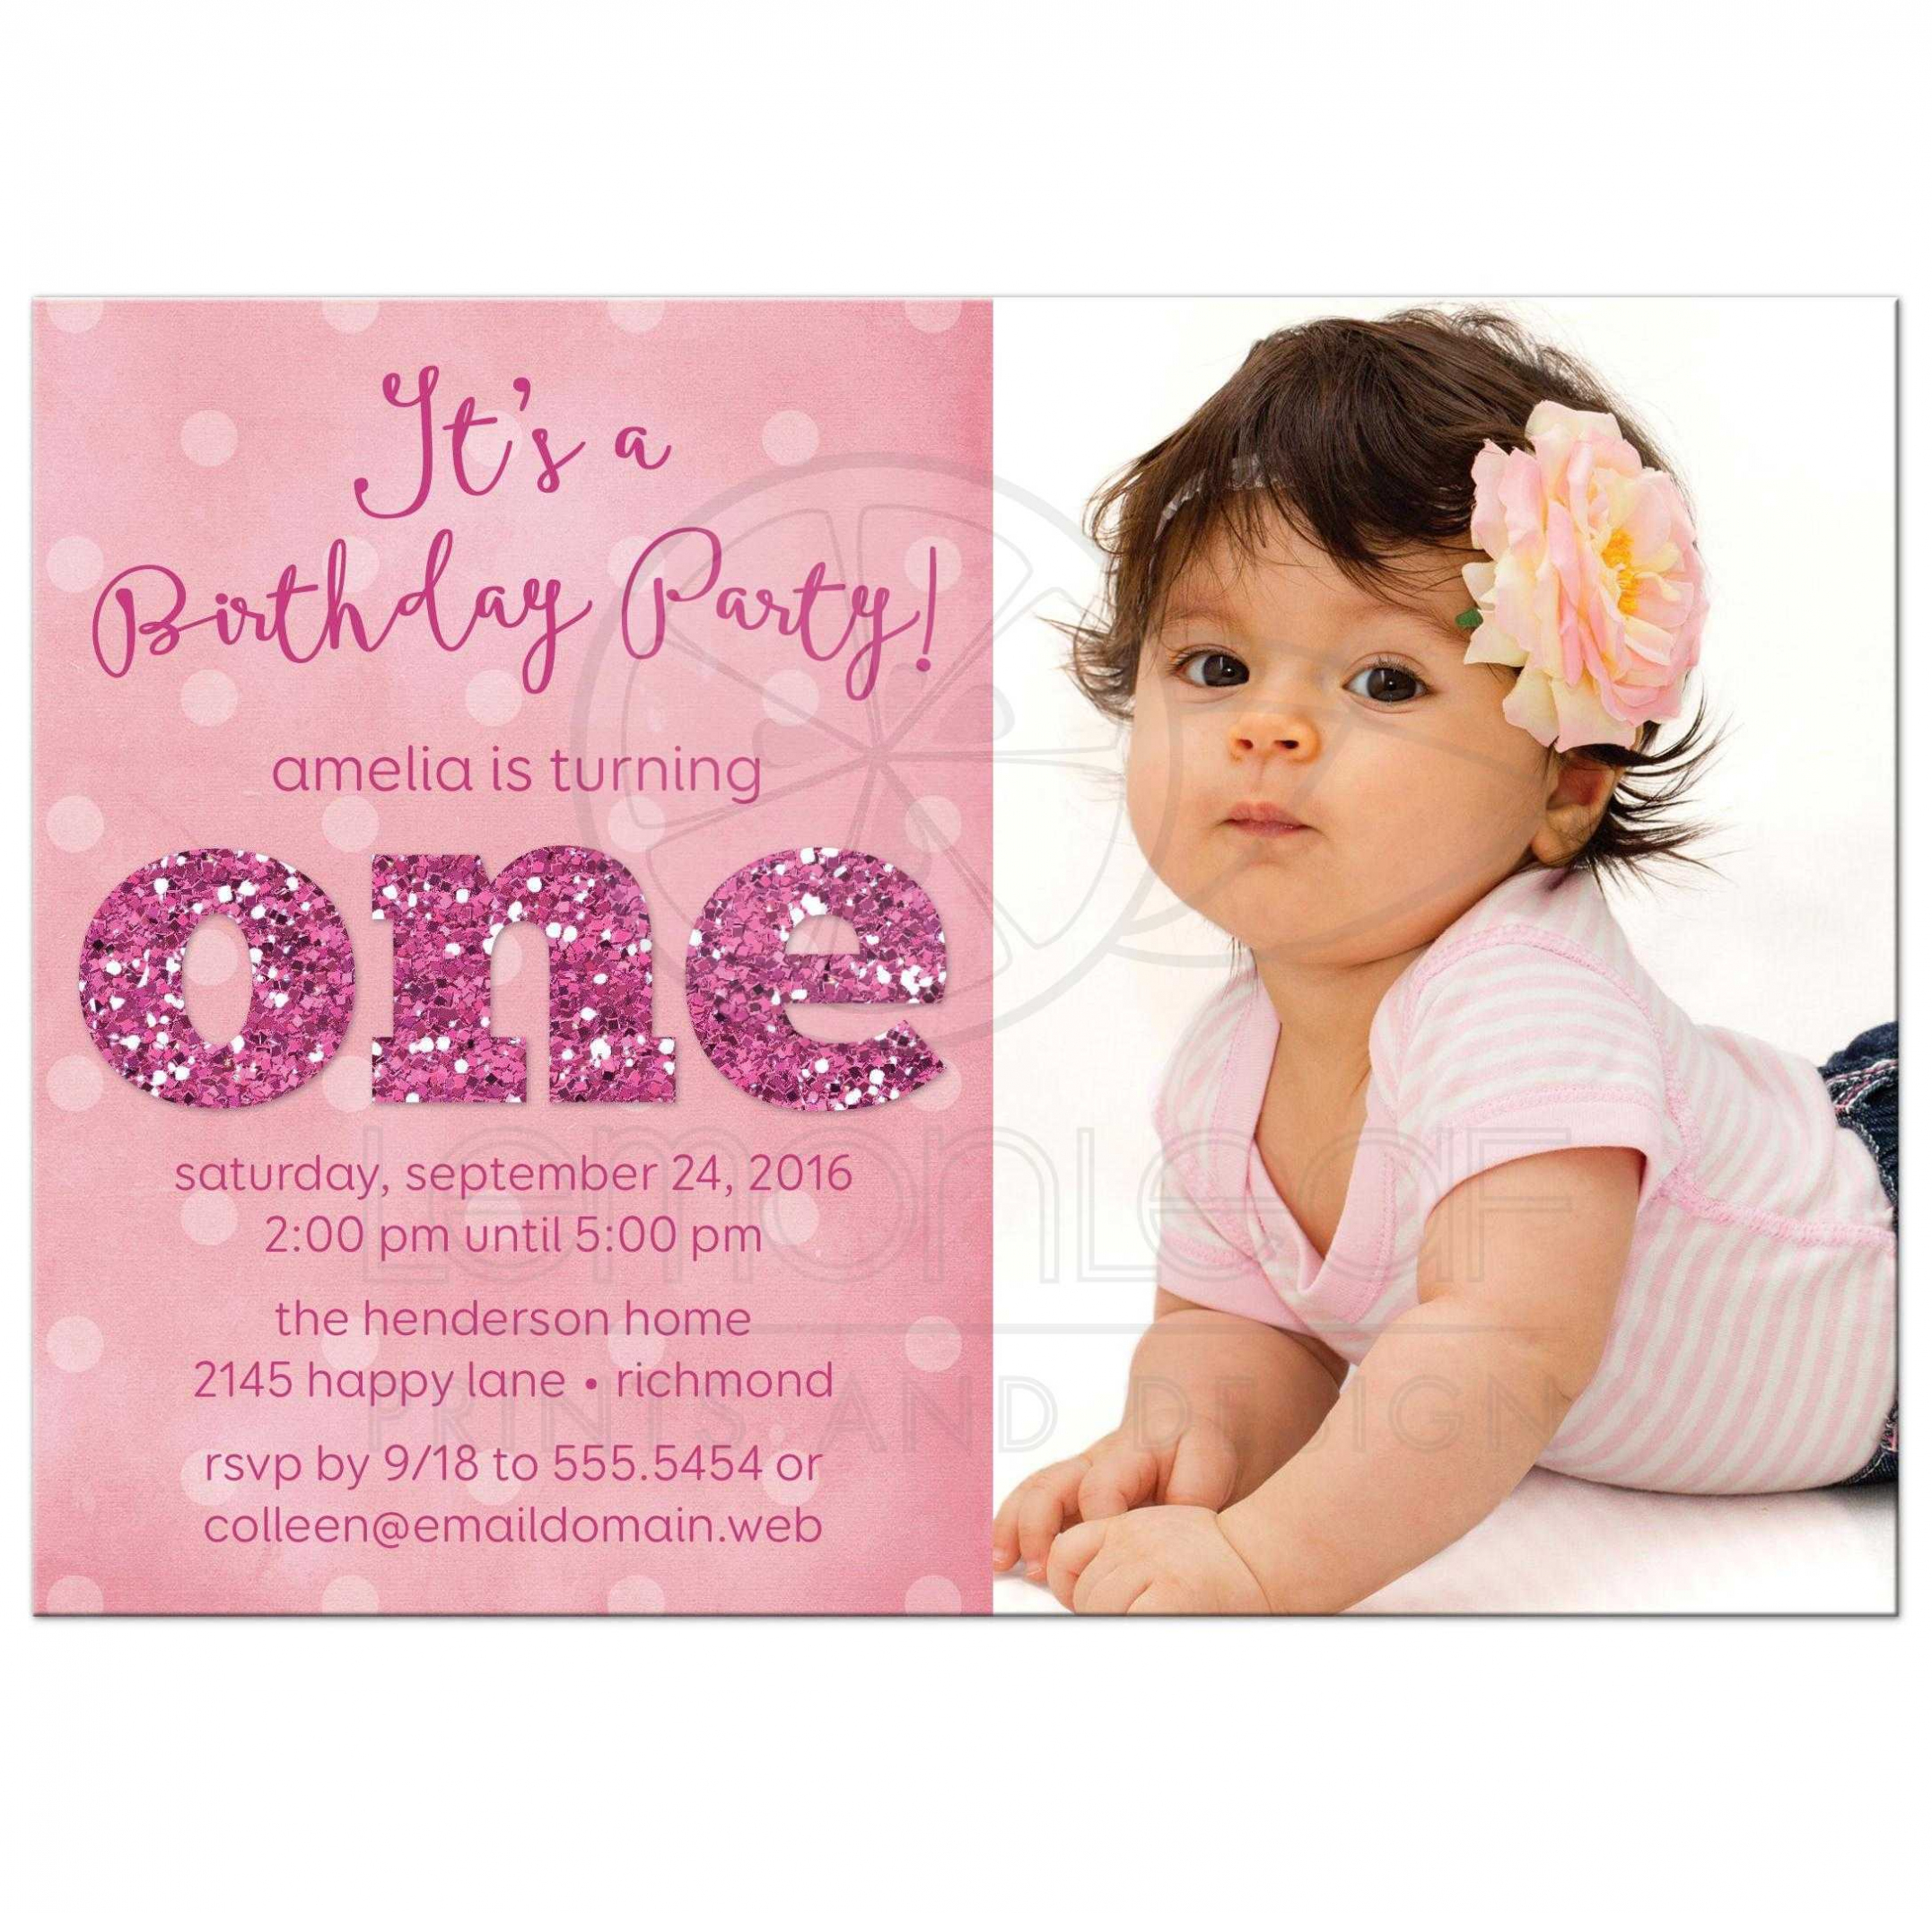 birthday invitation message for 6 year old ; birthday-invitation-wording-for-6-year-old-alanarasbach-birthday-invitation-wording-for-6-year-old-4